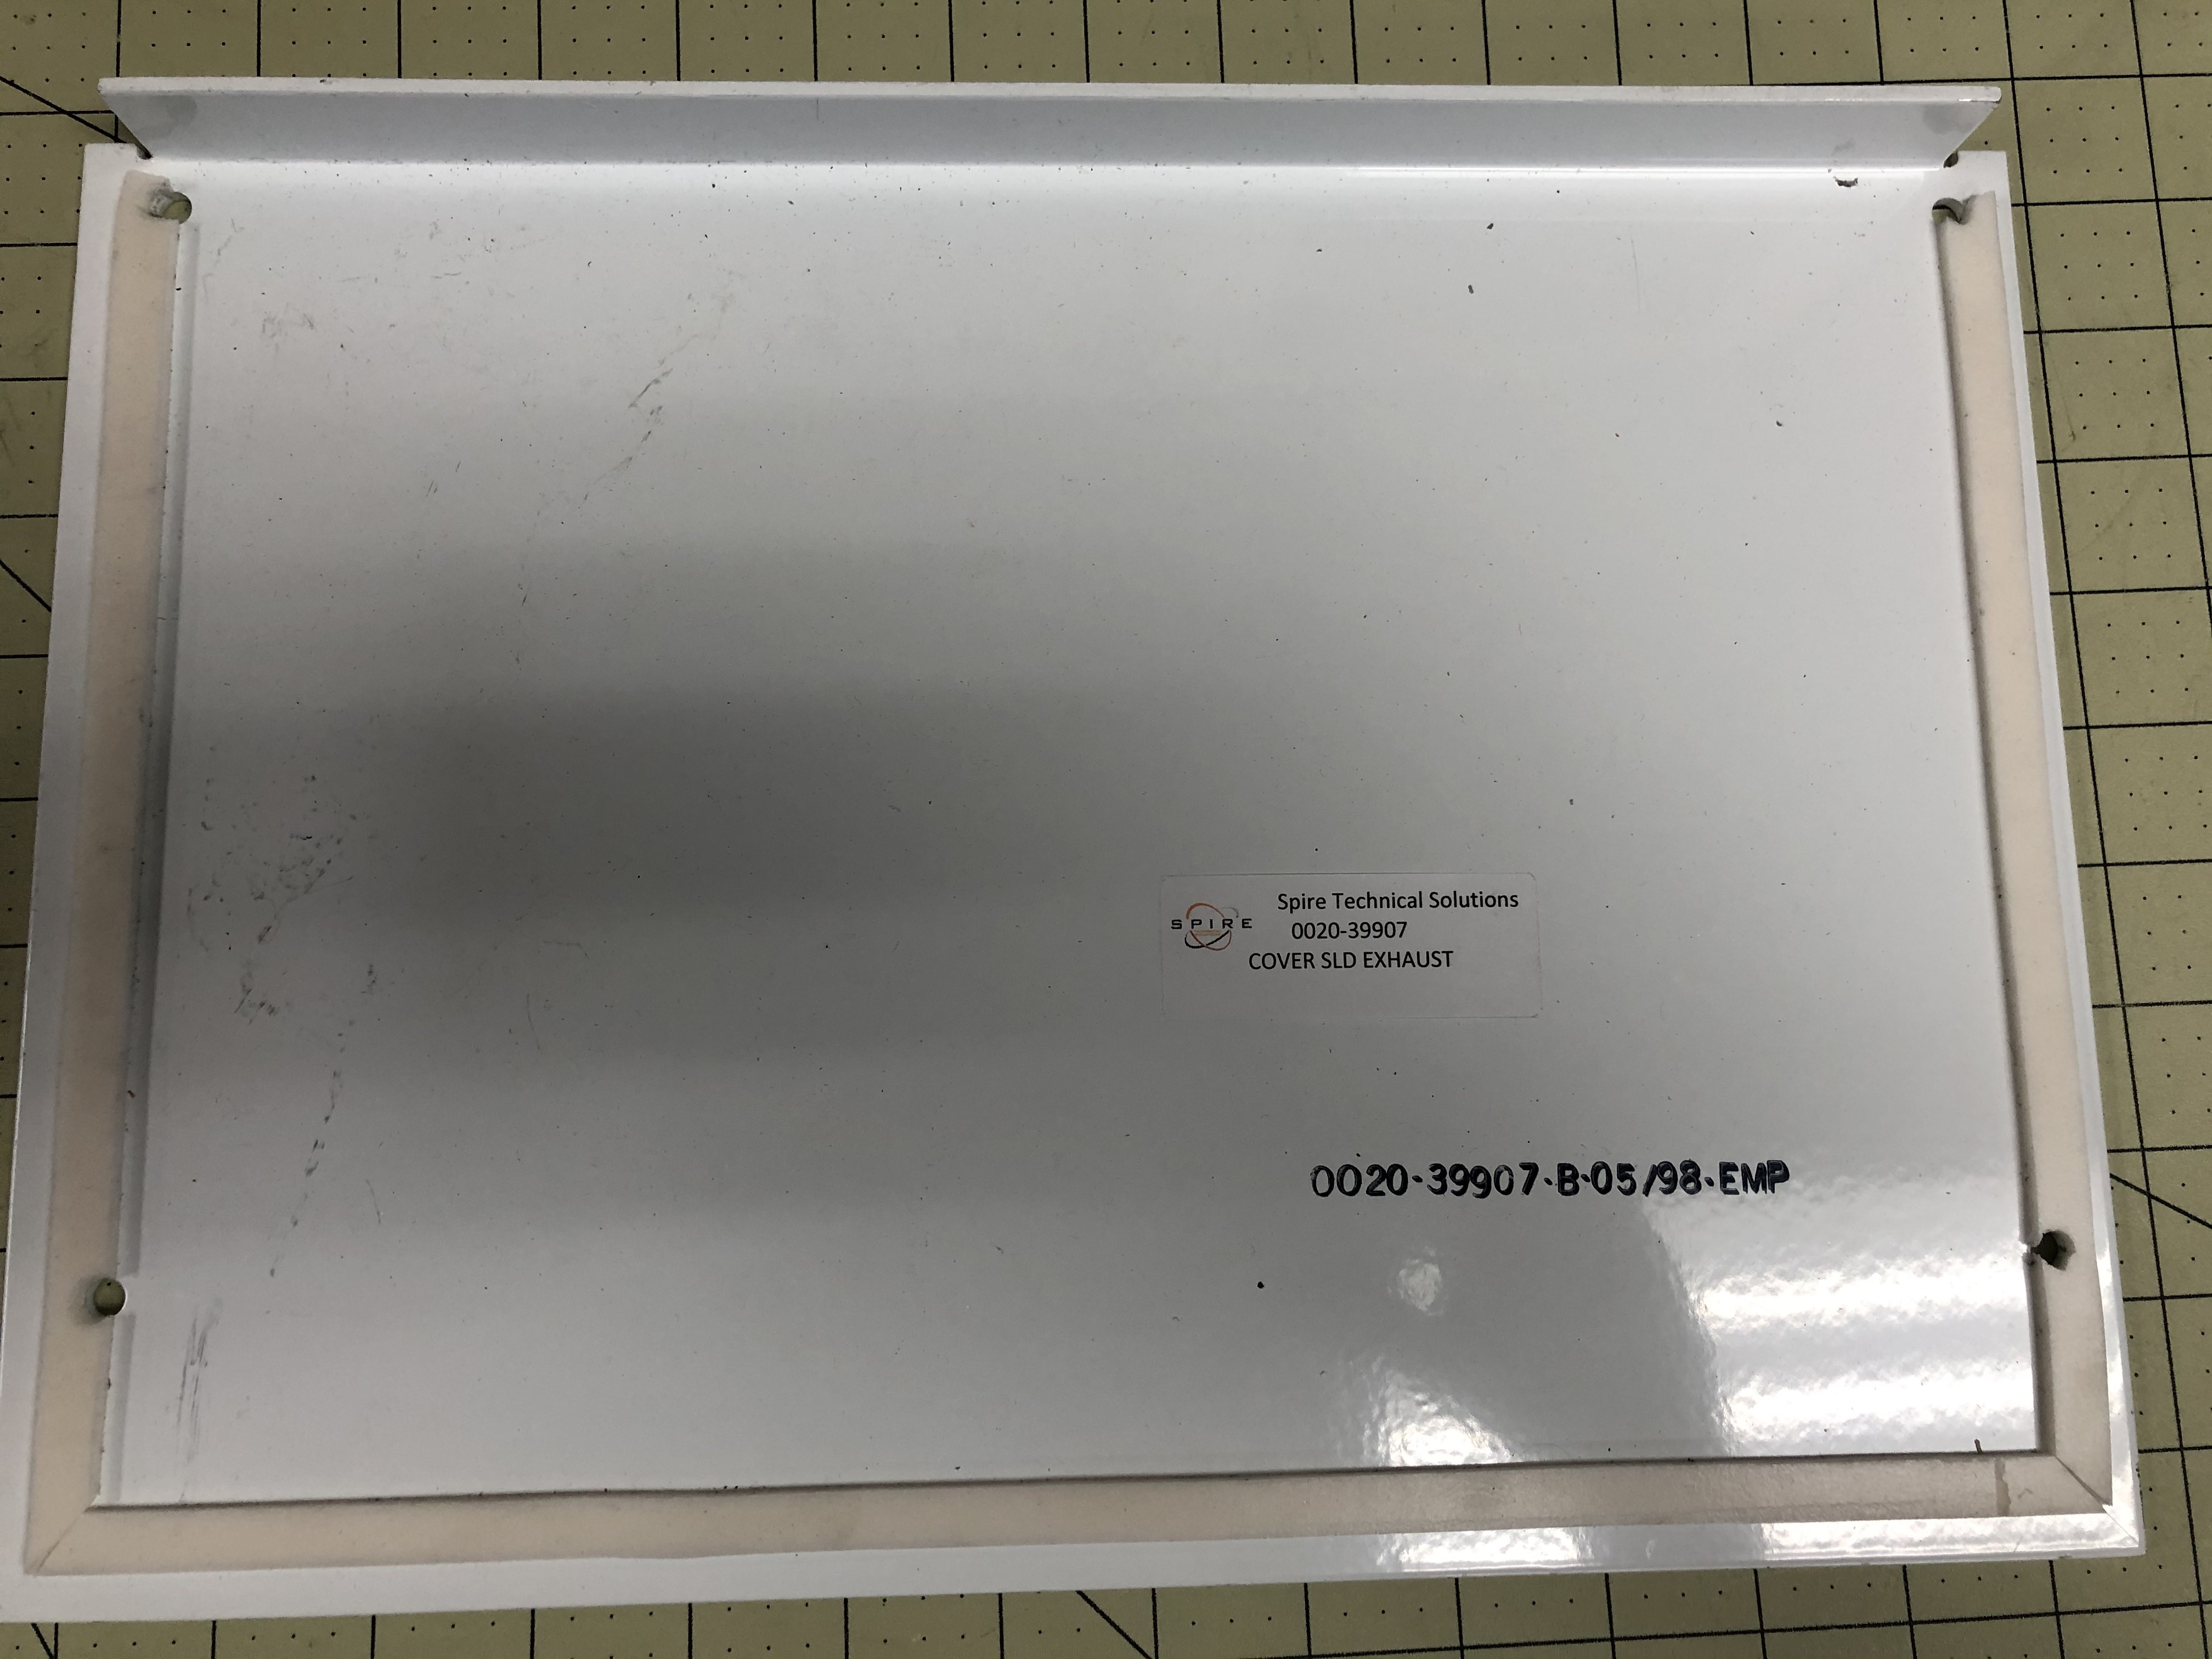 COVER SLD EXHAUST